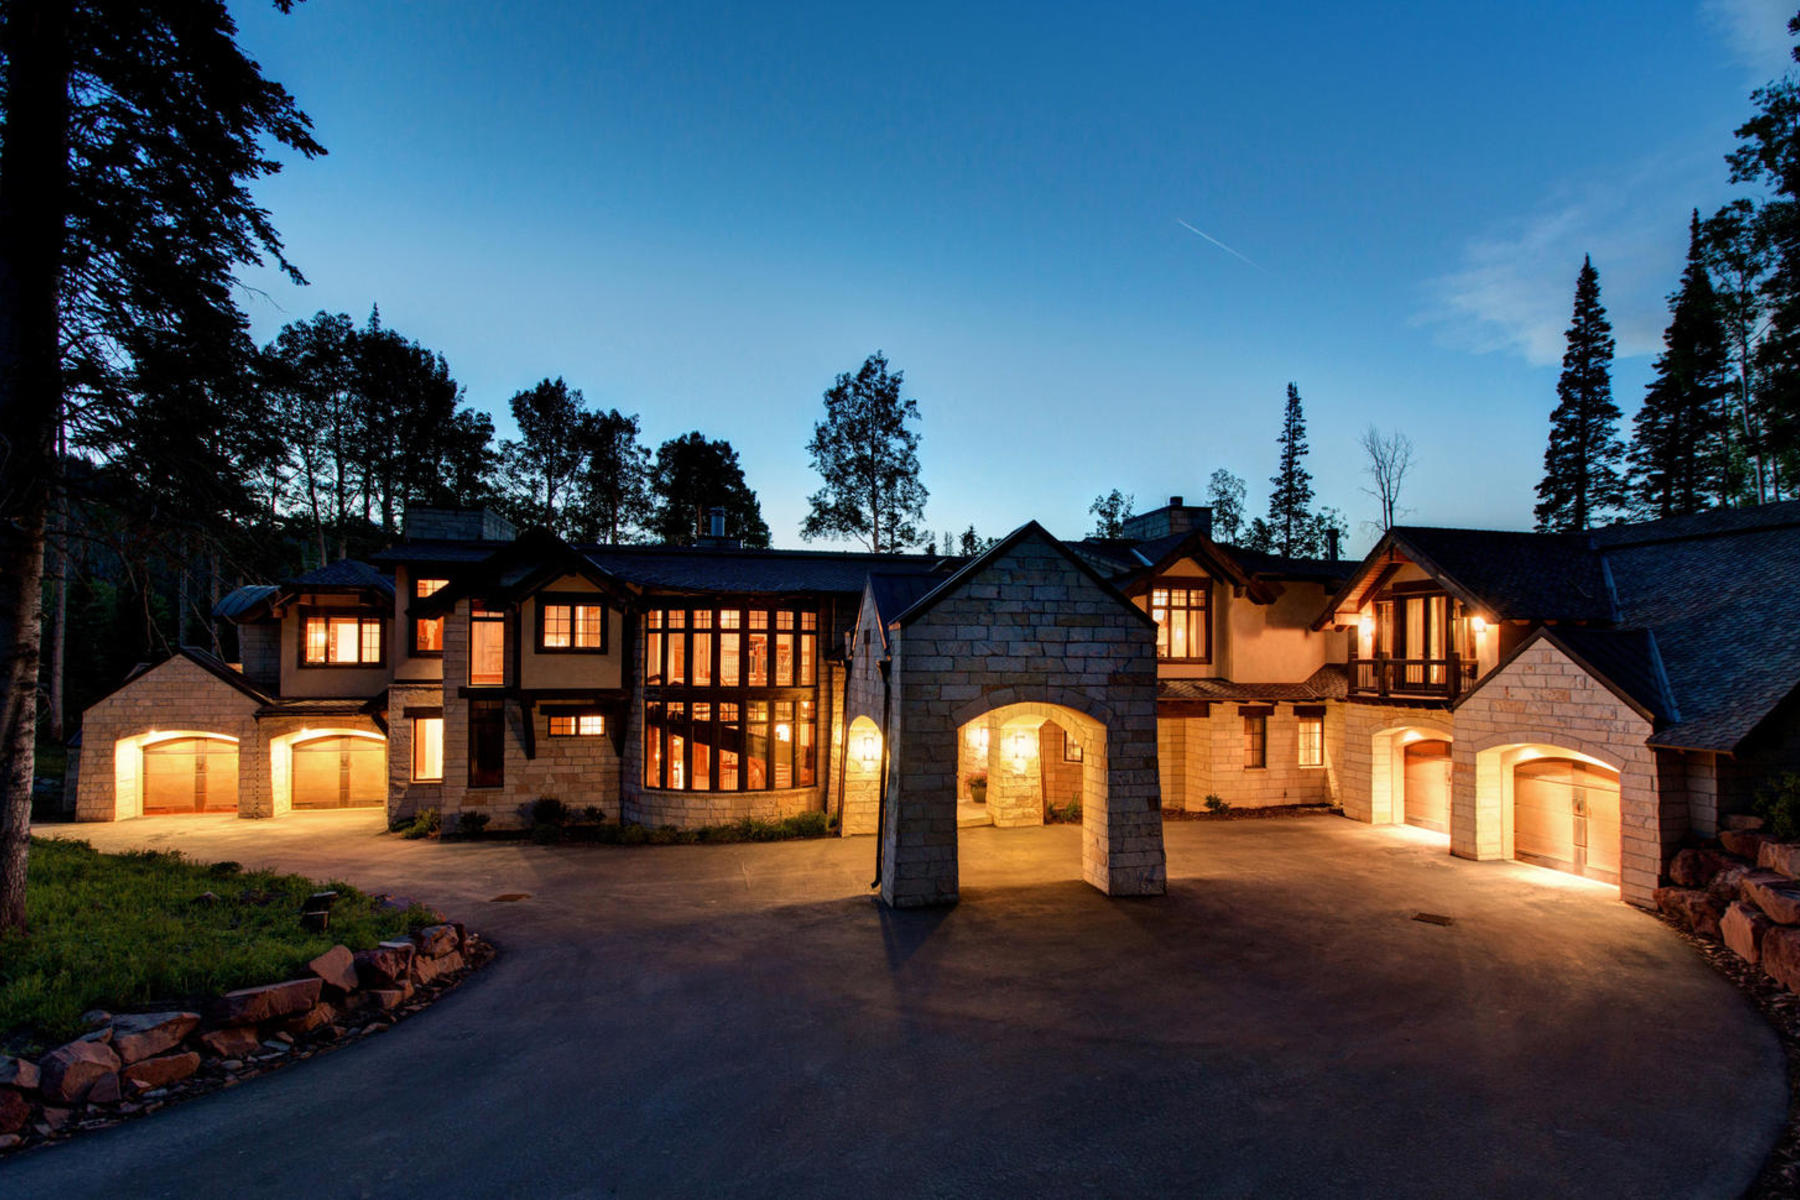 단독 가정 주택 용 매매 에 Unique Privacy and Seclusion with Unparalleled Ski Access 98 White Pine Canyon Rd Park City, 유타, 84098 미국